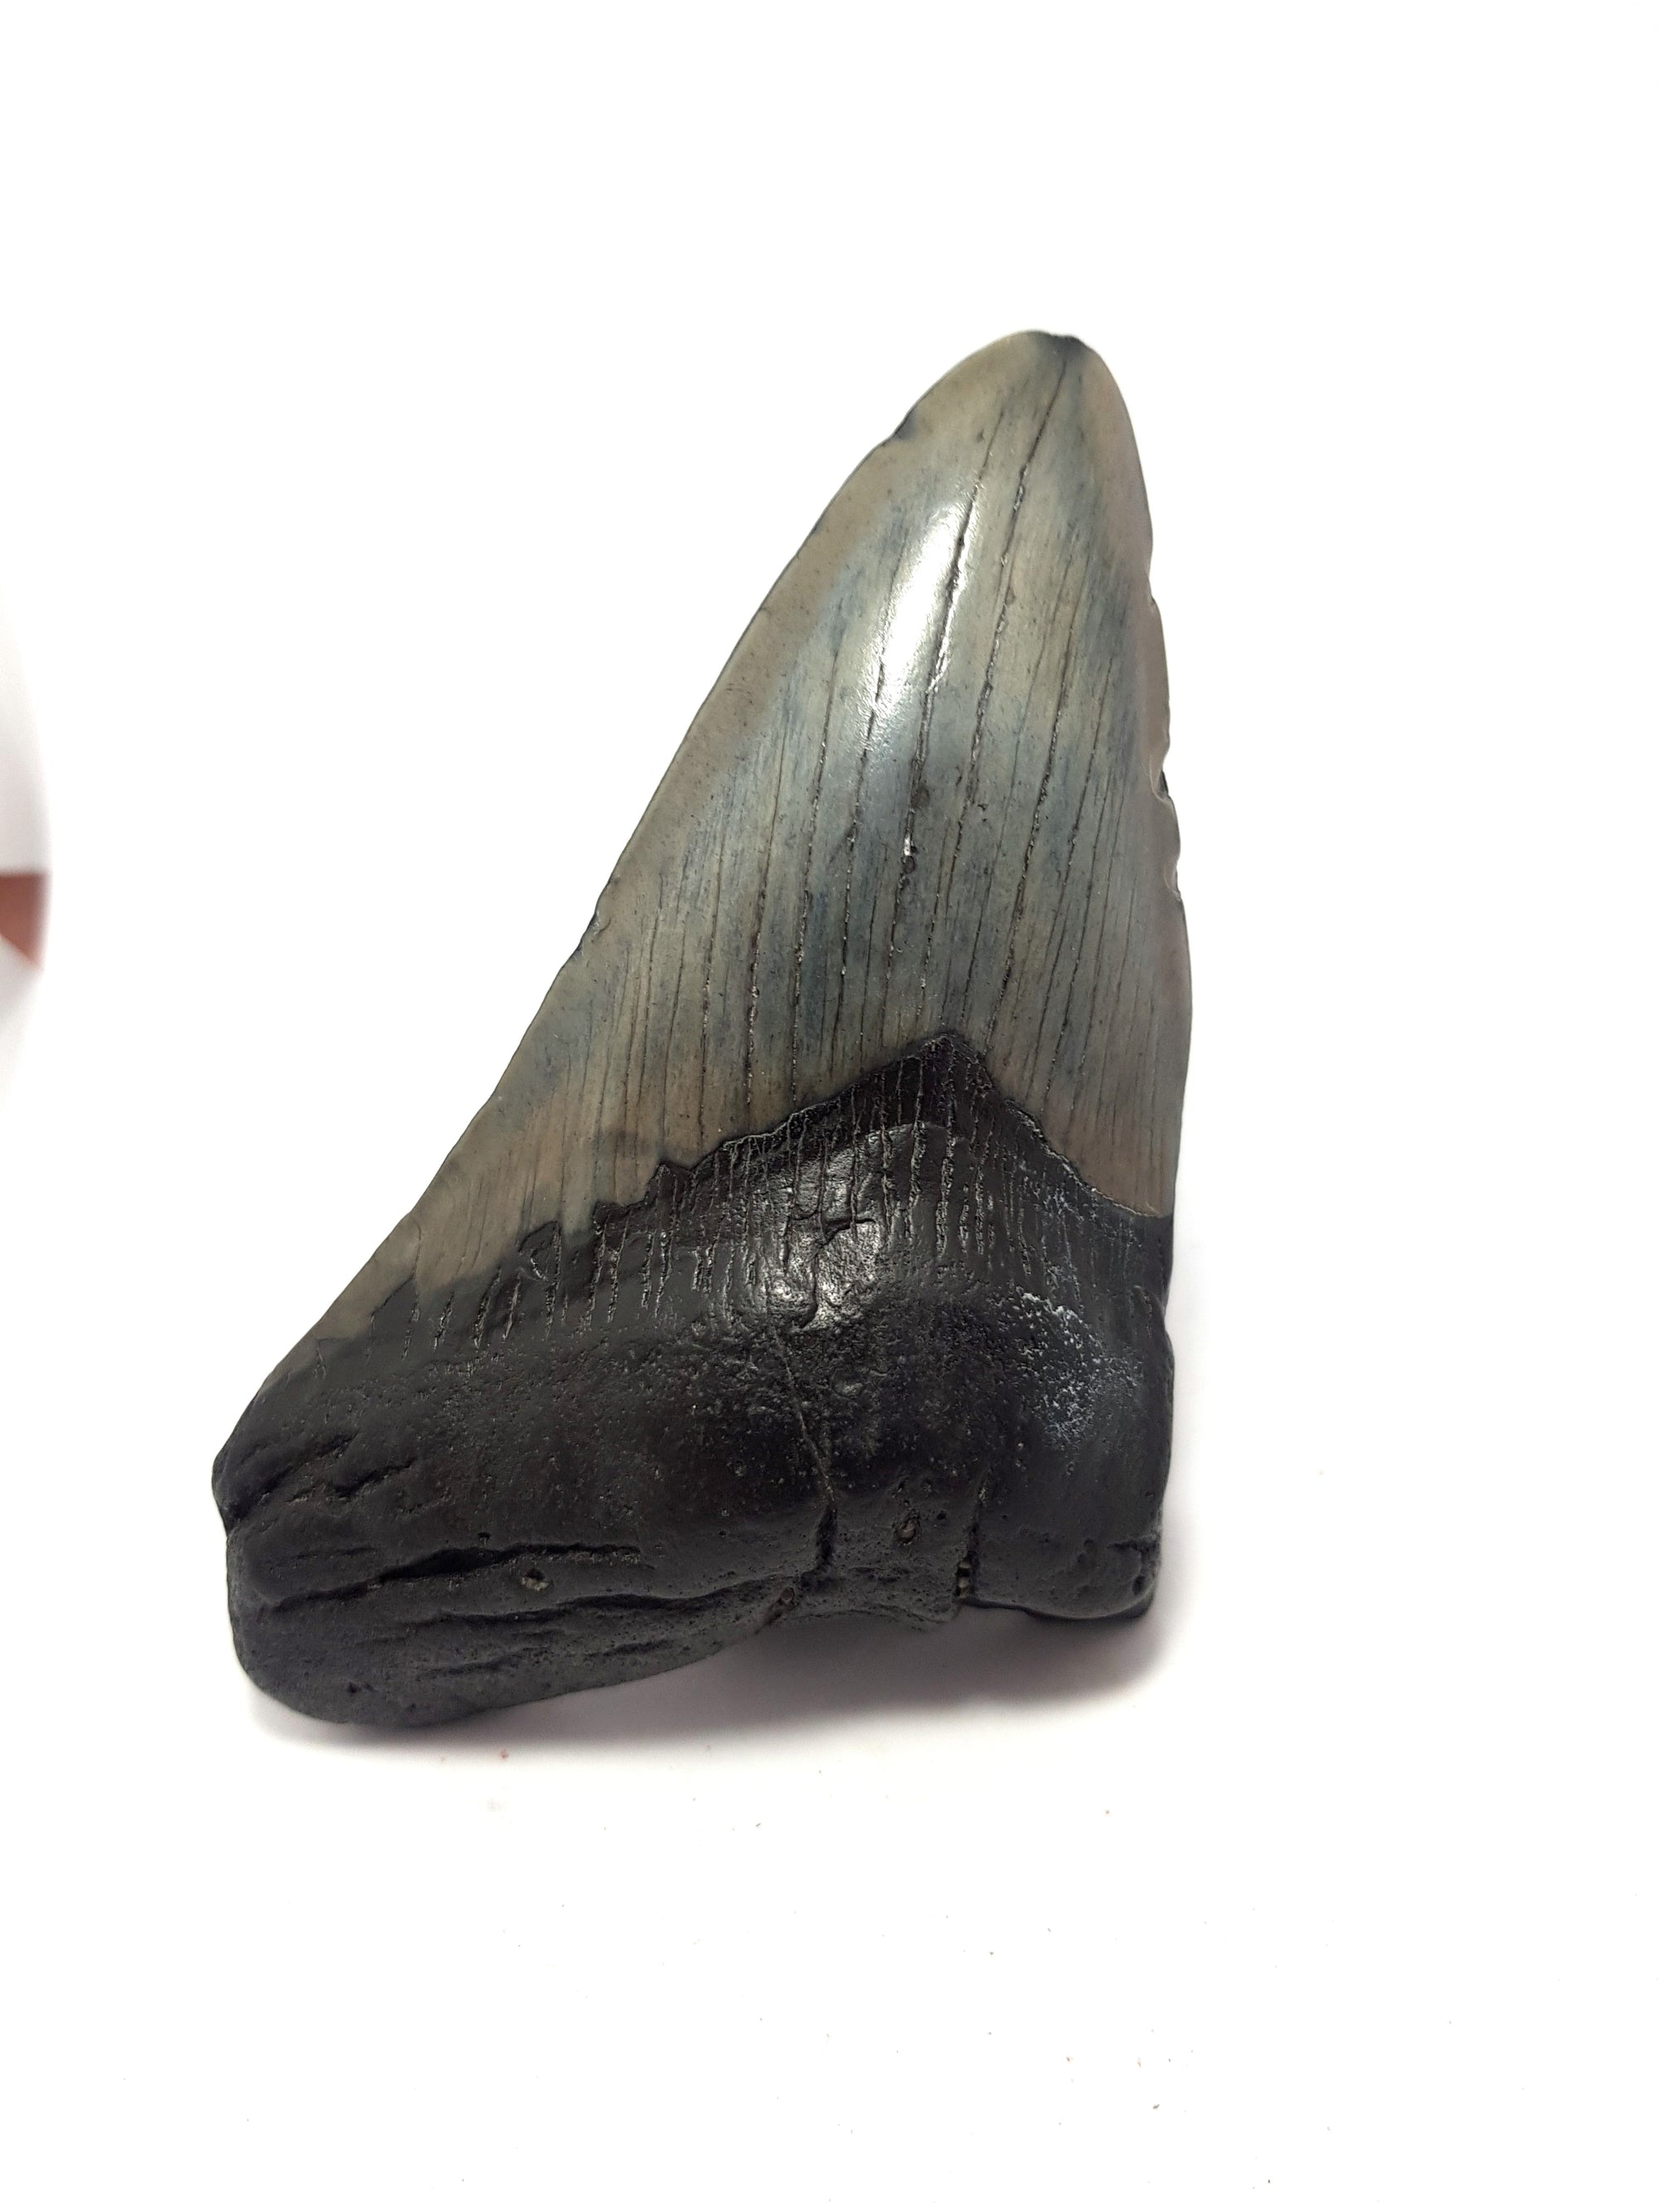 partial megalodon tooth. grey enamel present. Root material is black